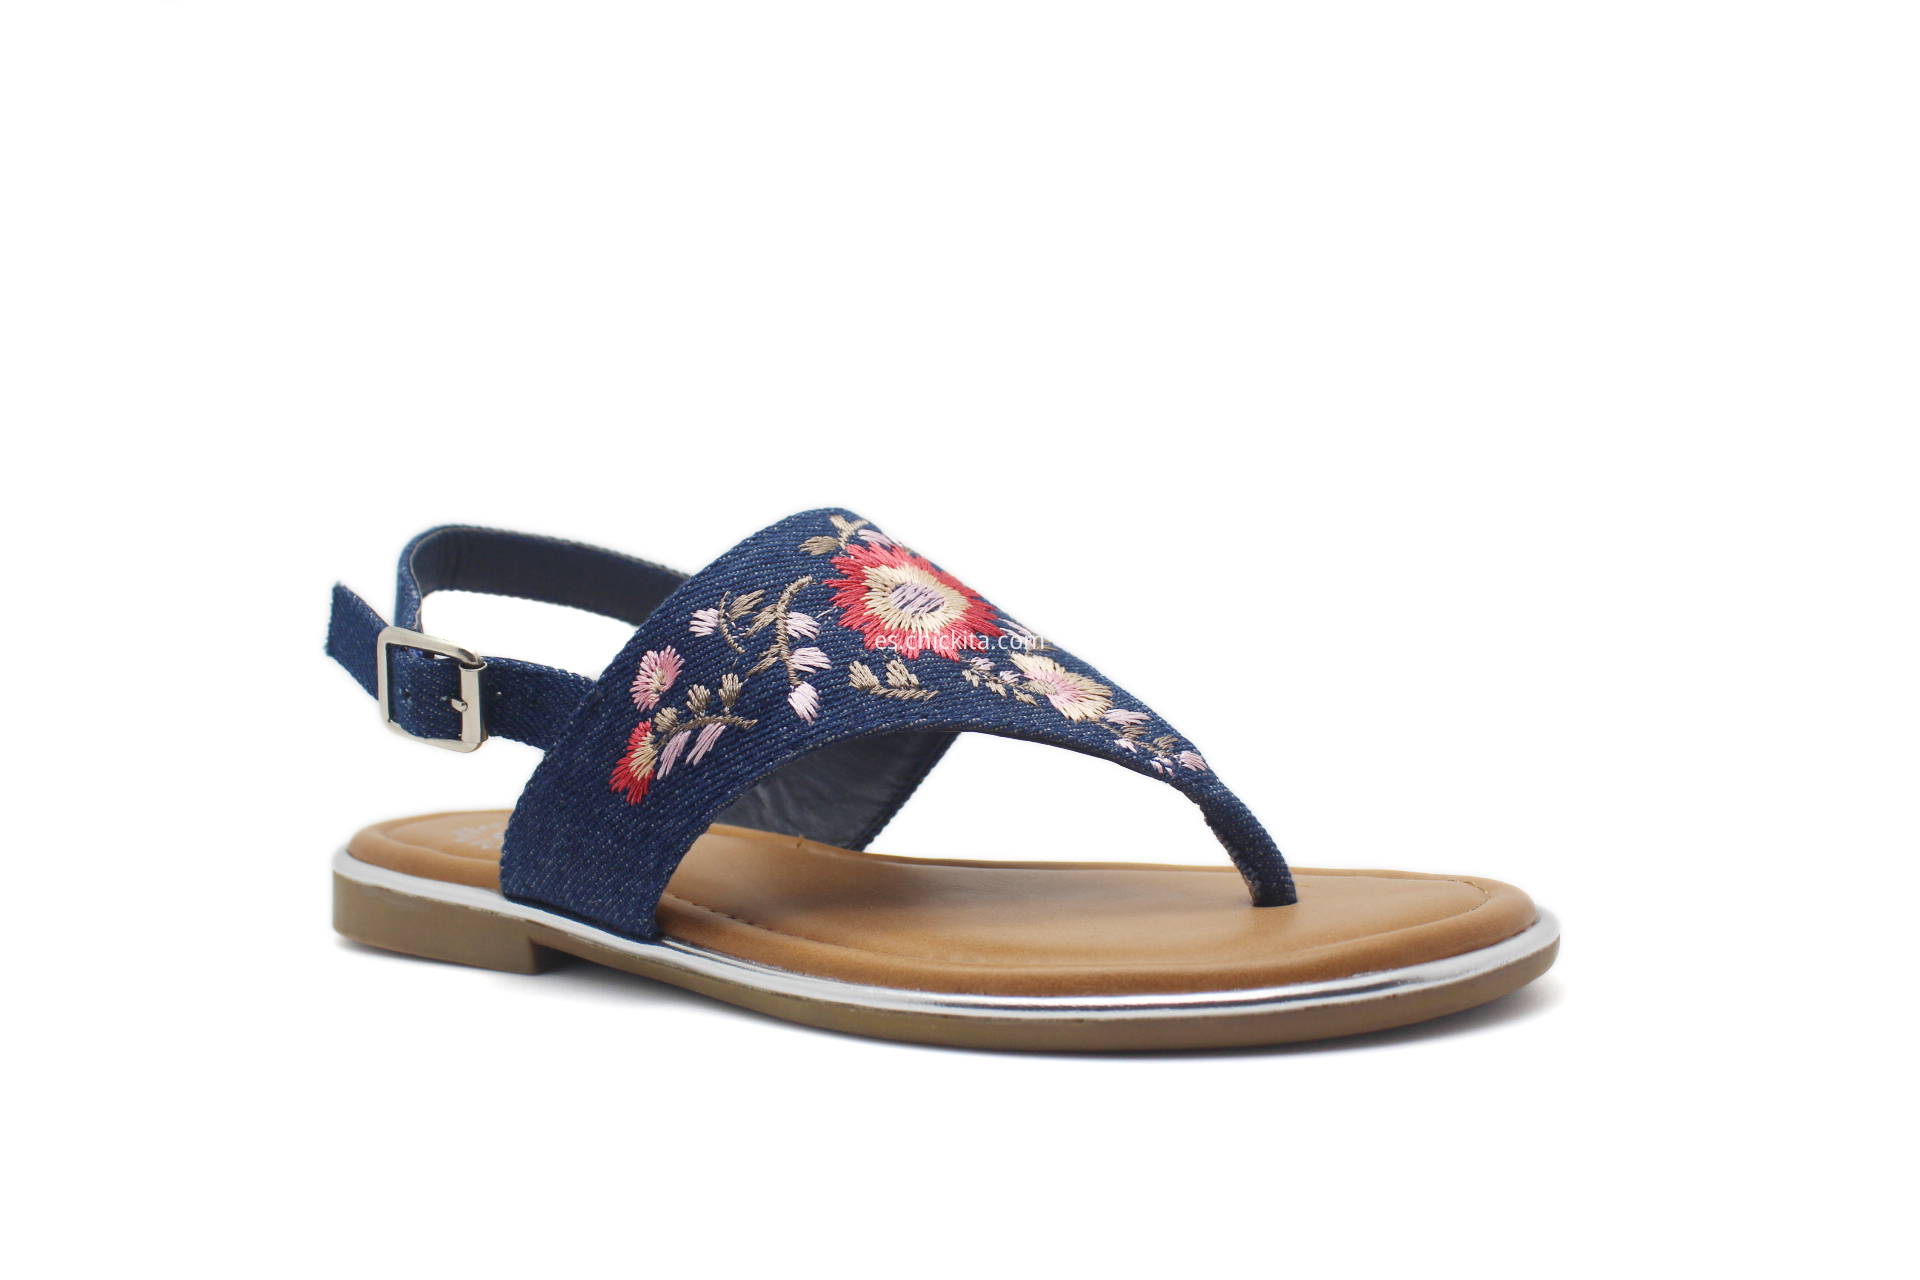 Women sandals, girls sandals